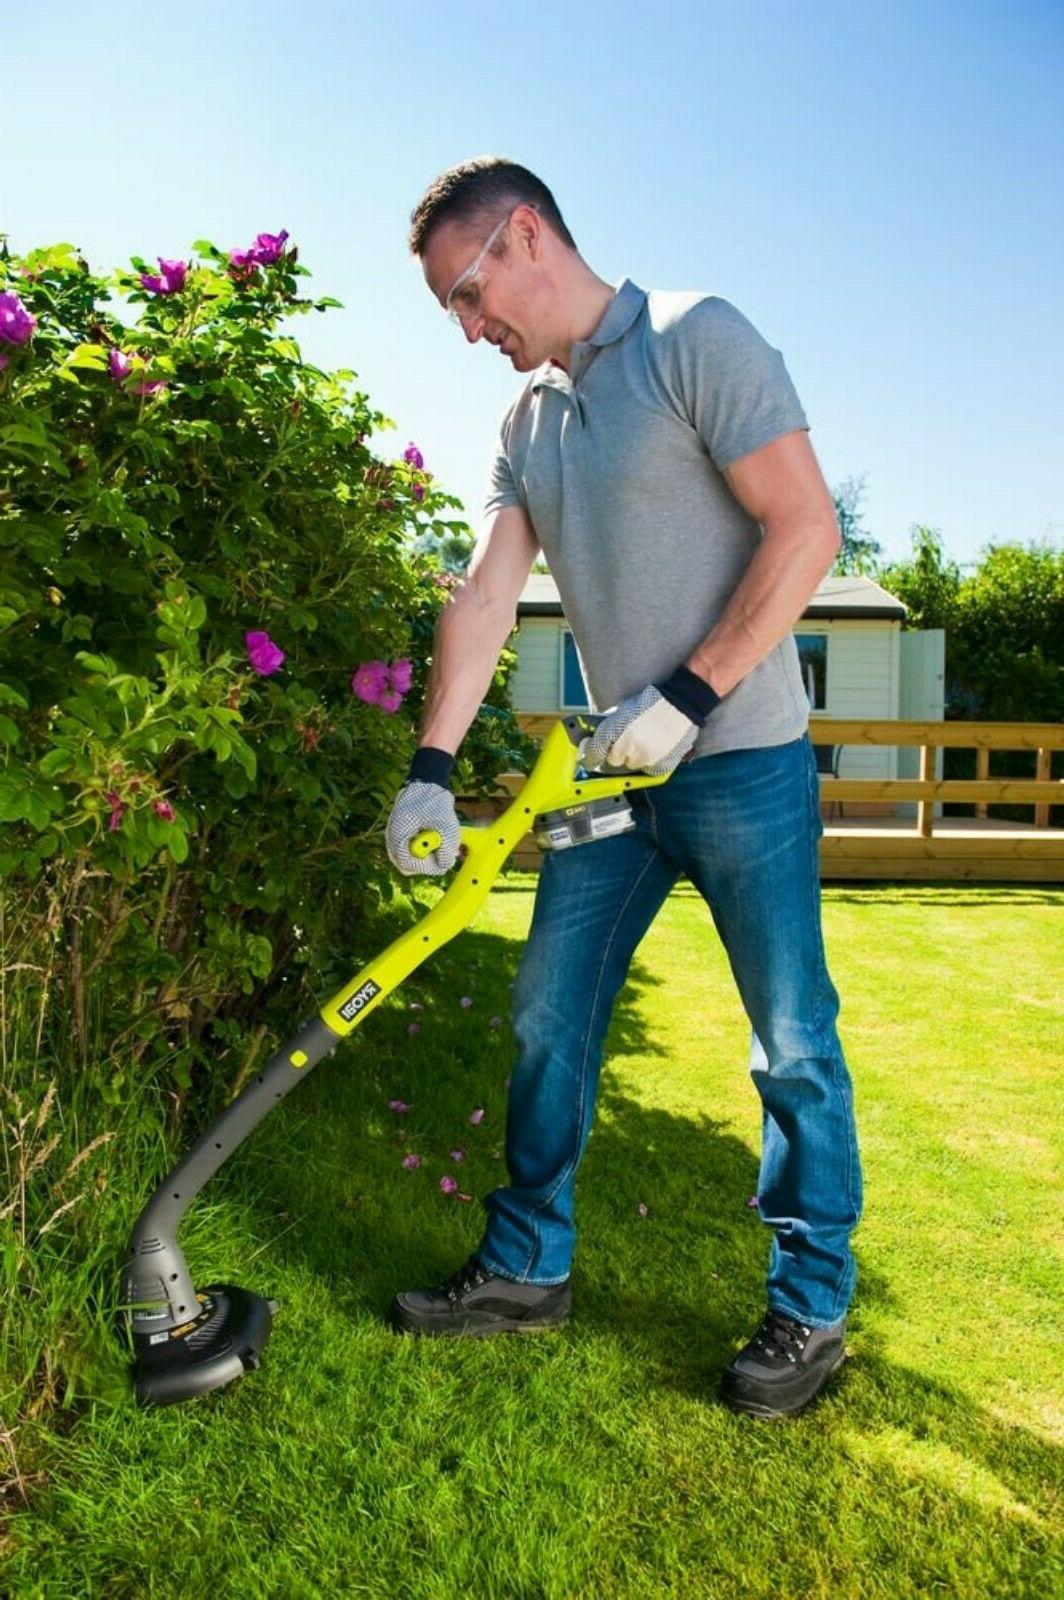 Ryobi Weed Edger Outdoor Lawn Trimming